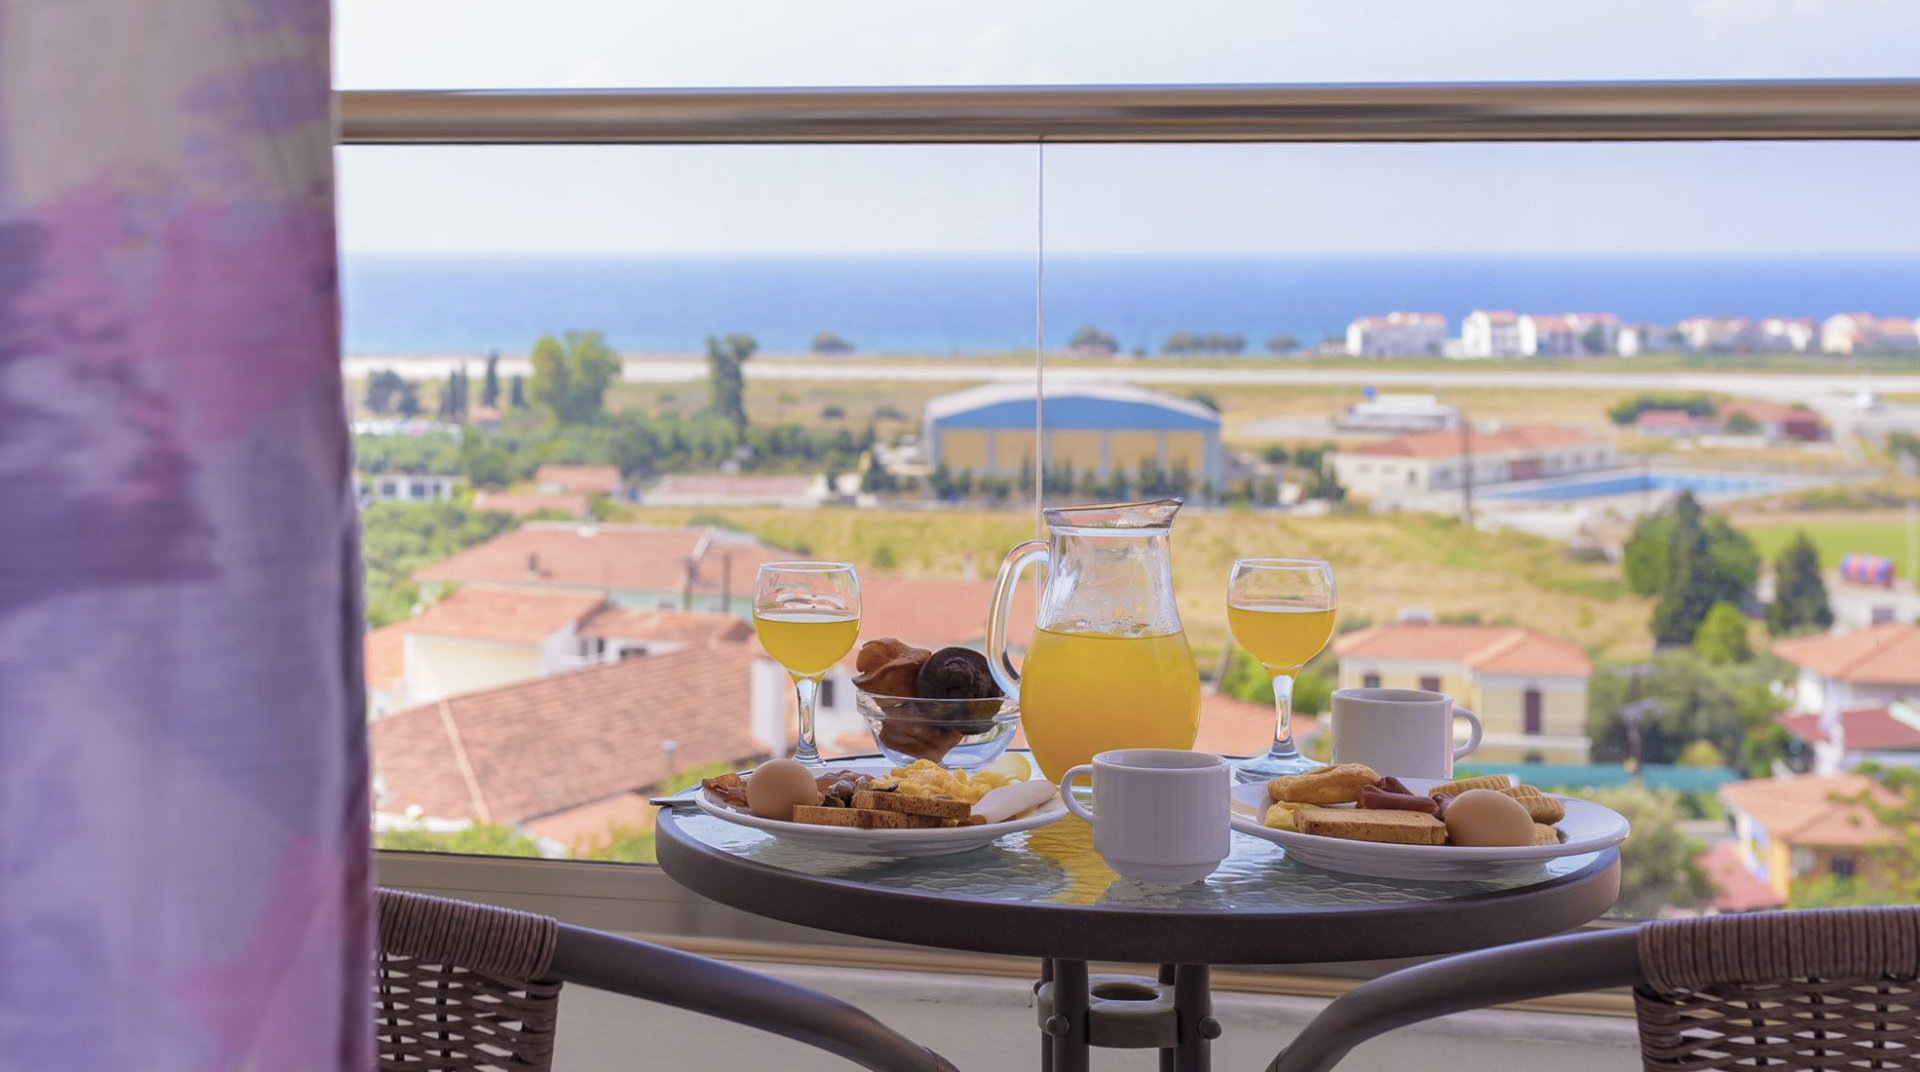 Table at the balcony of our room with plates full of our delicious breakfast and juice looking at the sea